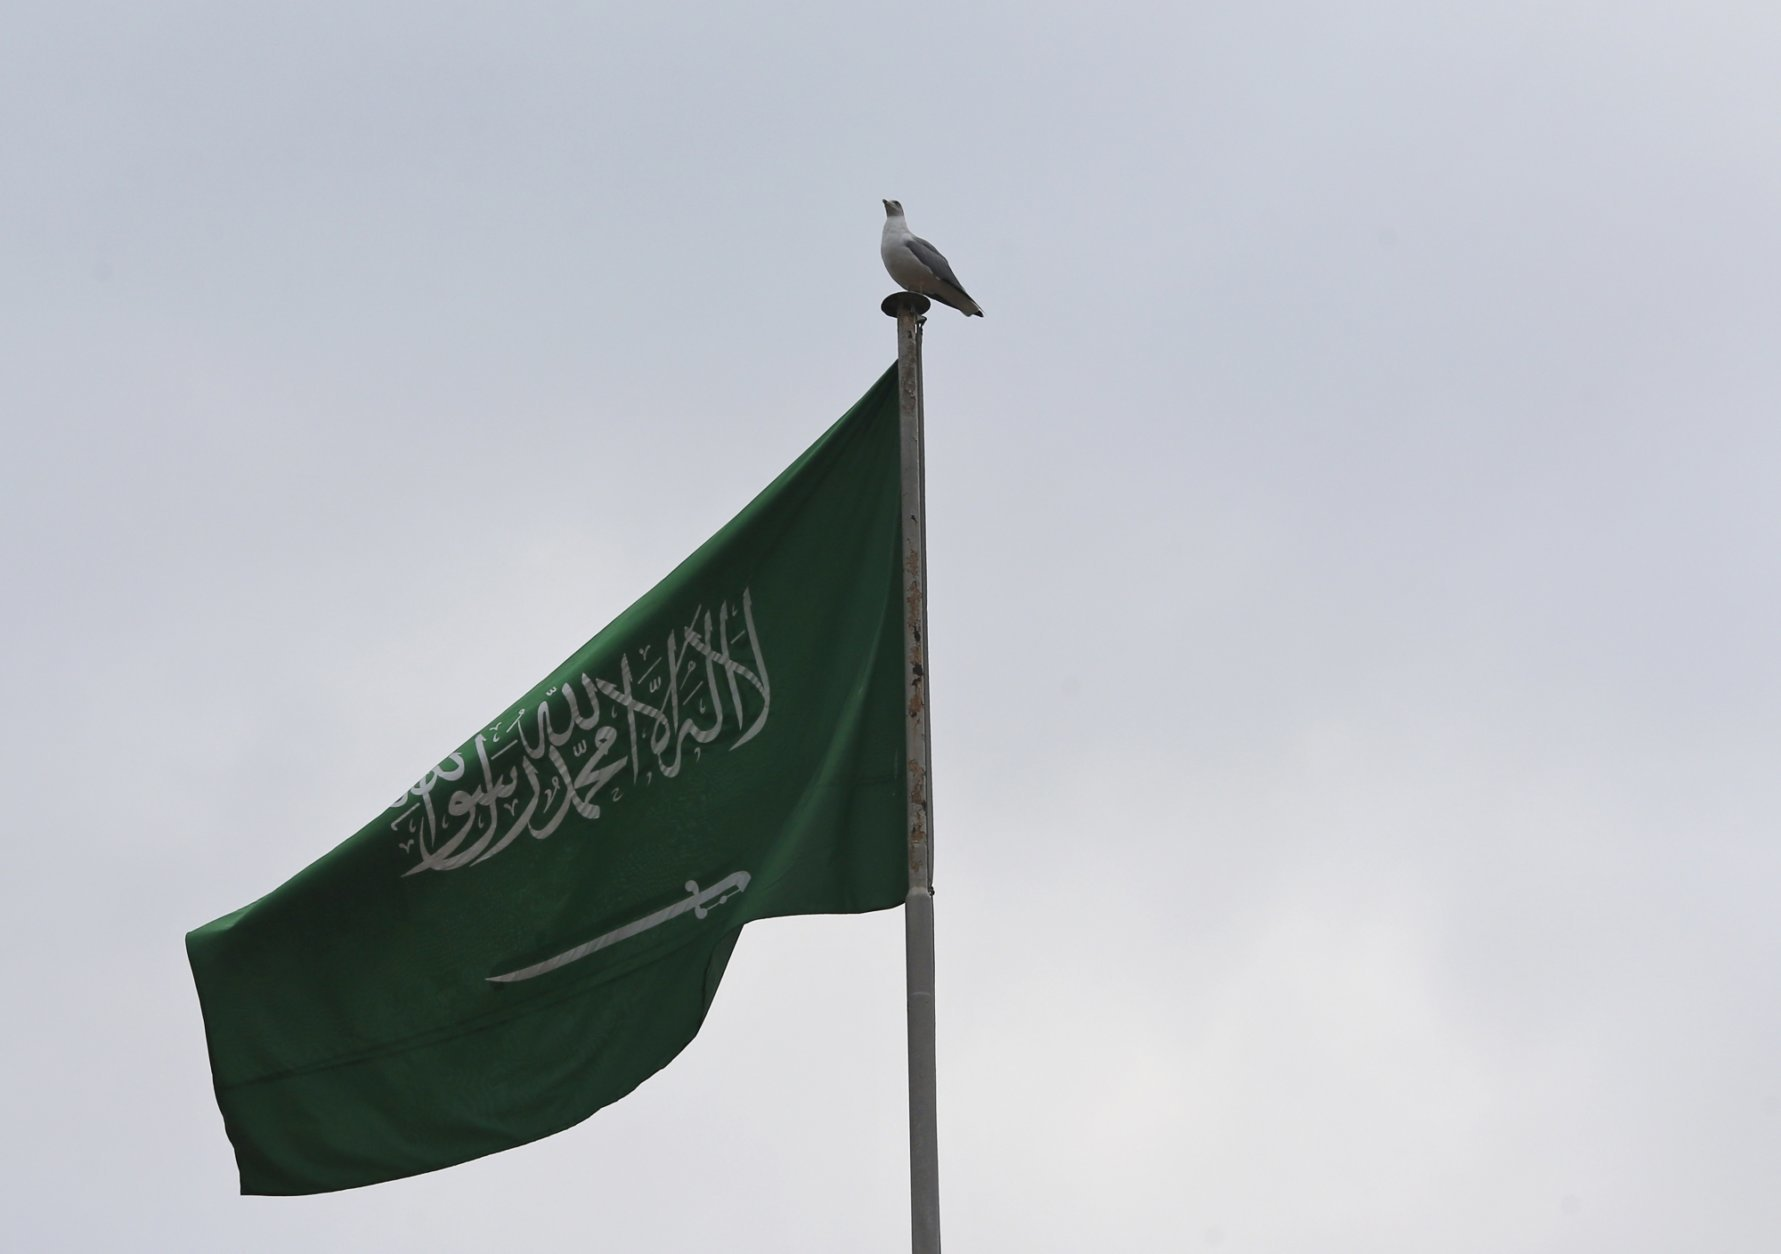 """The Saudi Arabia's flag flies atop the country's in Istanbul, Saturday, Oct. 20, 2018. Saudi Arabia claims Saudi journalist Jamal Khashoggi died in a """"fistfight"""" in consulate, finally admitting that the writer had been slain at its diplomatic post. The overnight announcements in Saudi state media came more than two weeks after Khashoggi, 59, entered the building for paperwork required to marry his Turkish fiancée, and never came out.(AP Photo/Lefteris Pitarakis)"""